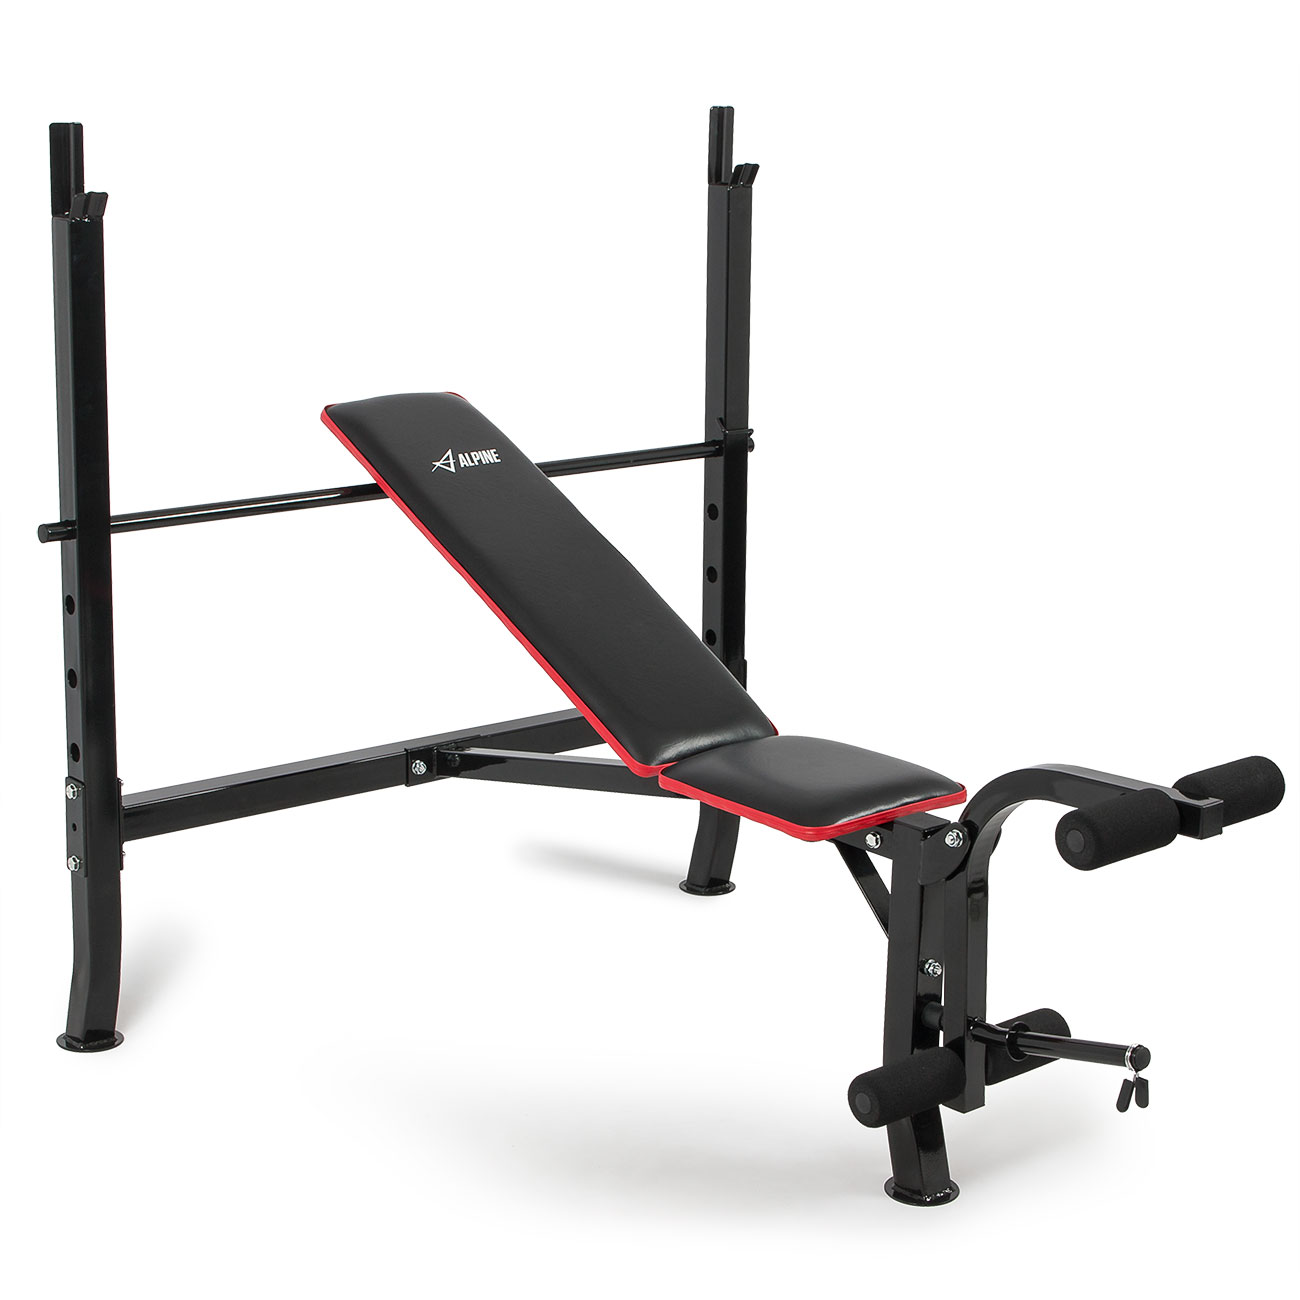 Weights Bench Multi Home Gym Equipment Dumbell Workout Abs: Multi-Function Weight Lifting Adjustable Exercise Bench